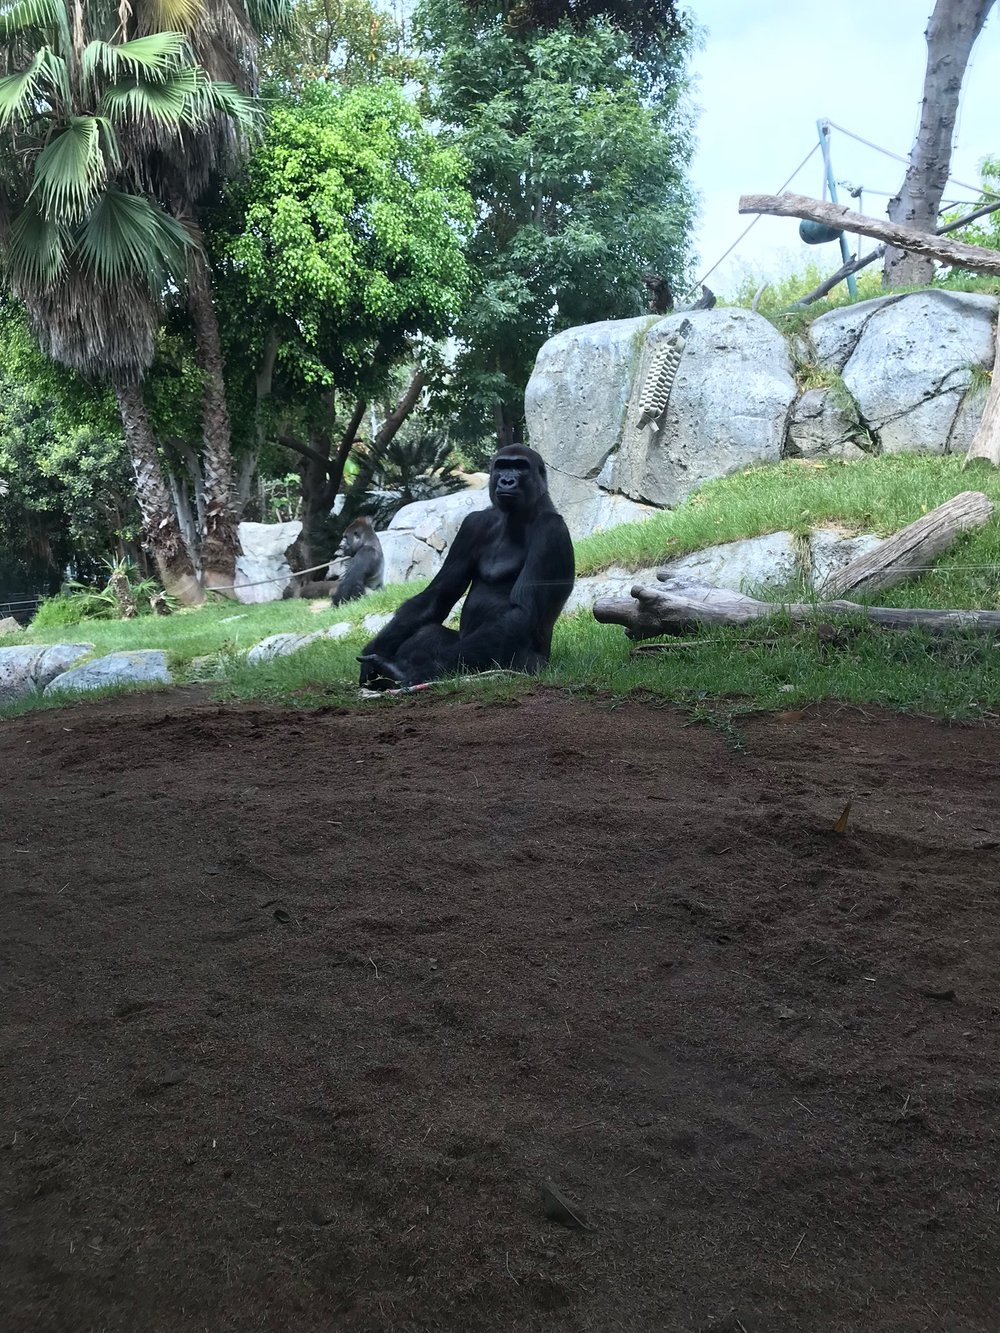 San Diego Zoo: Mr. Gorilla